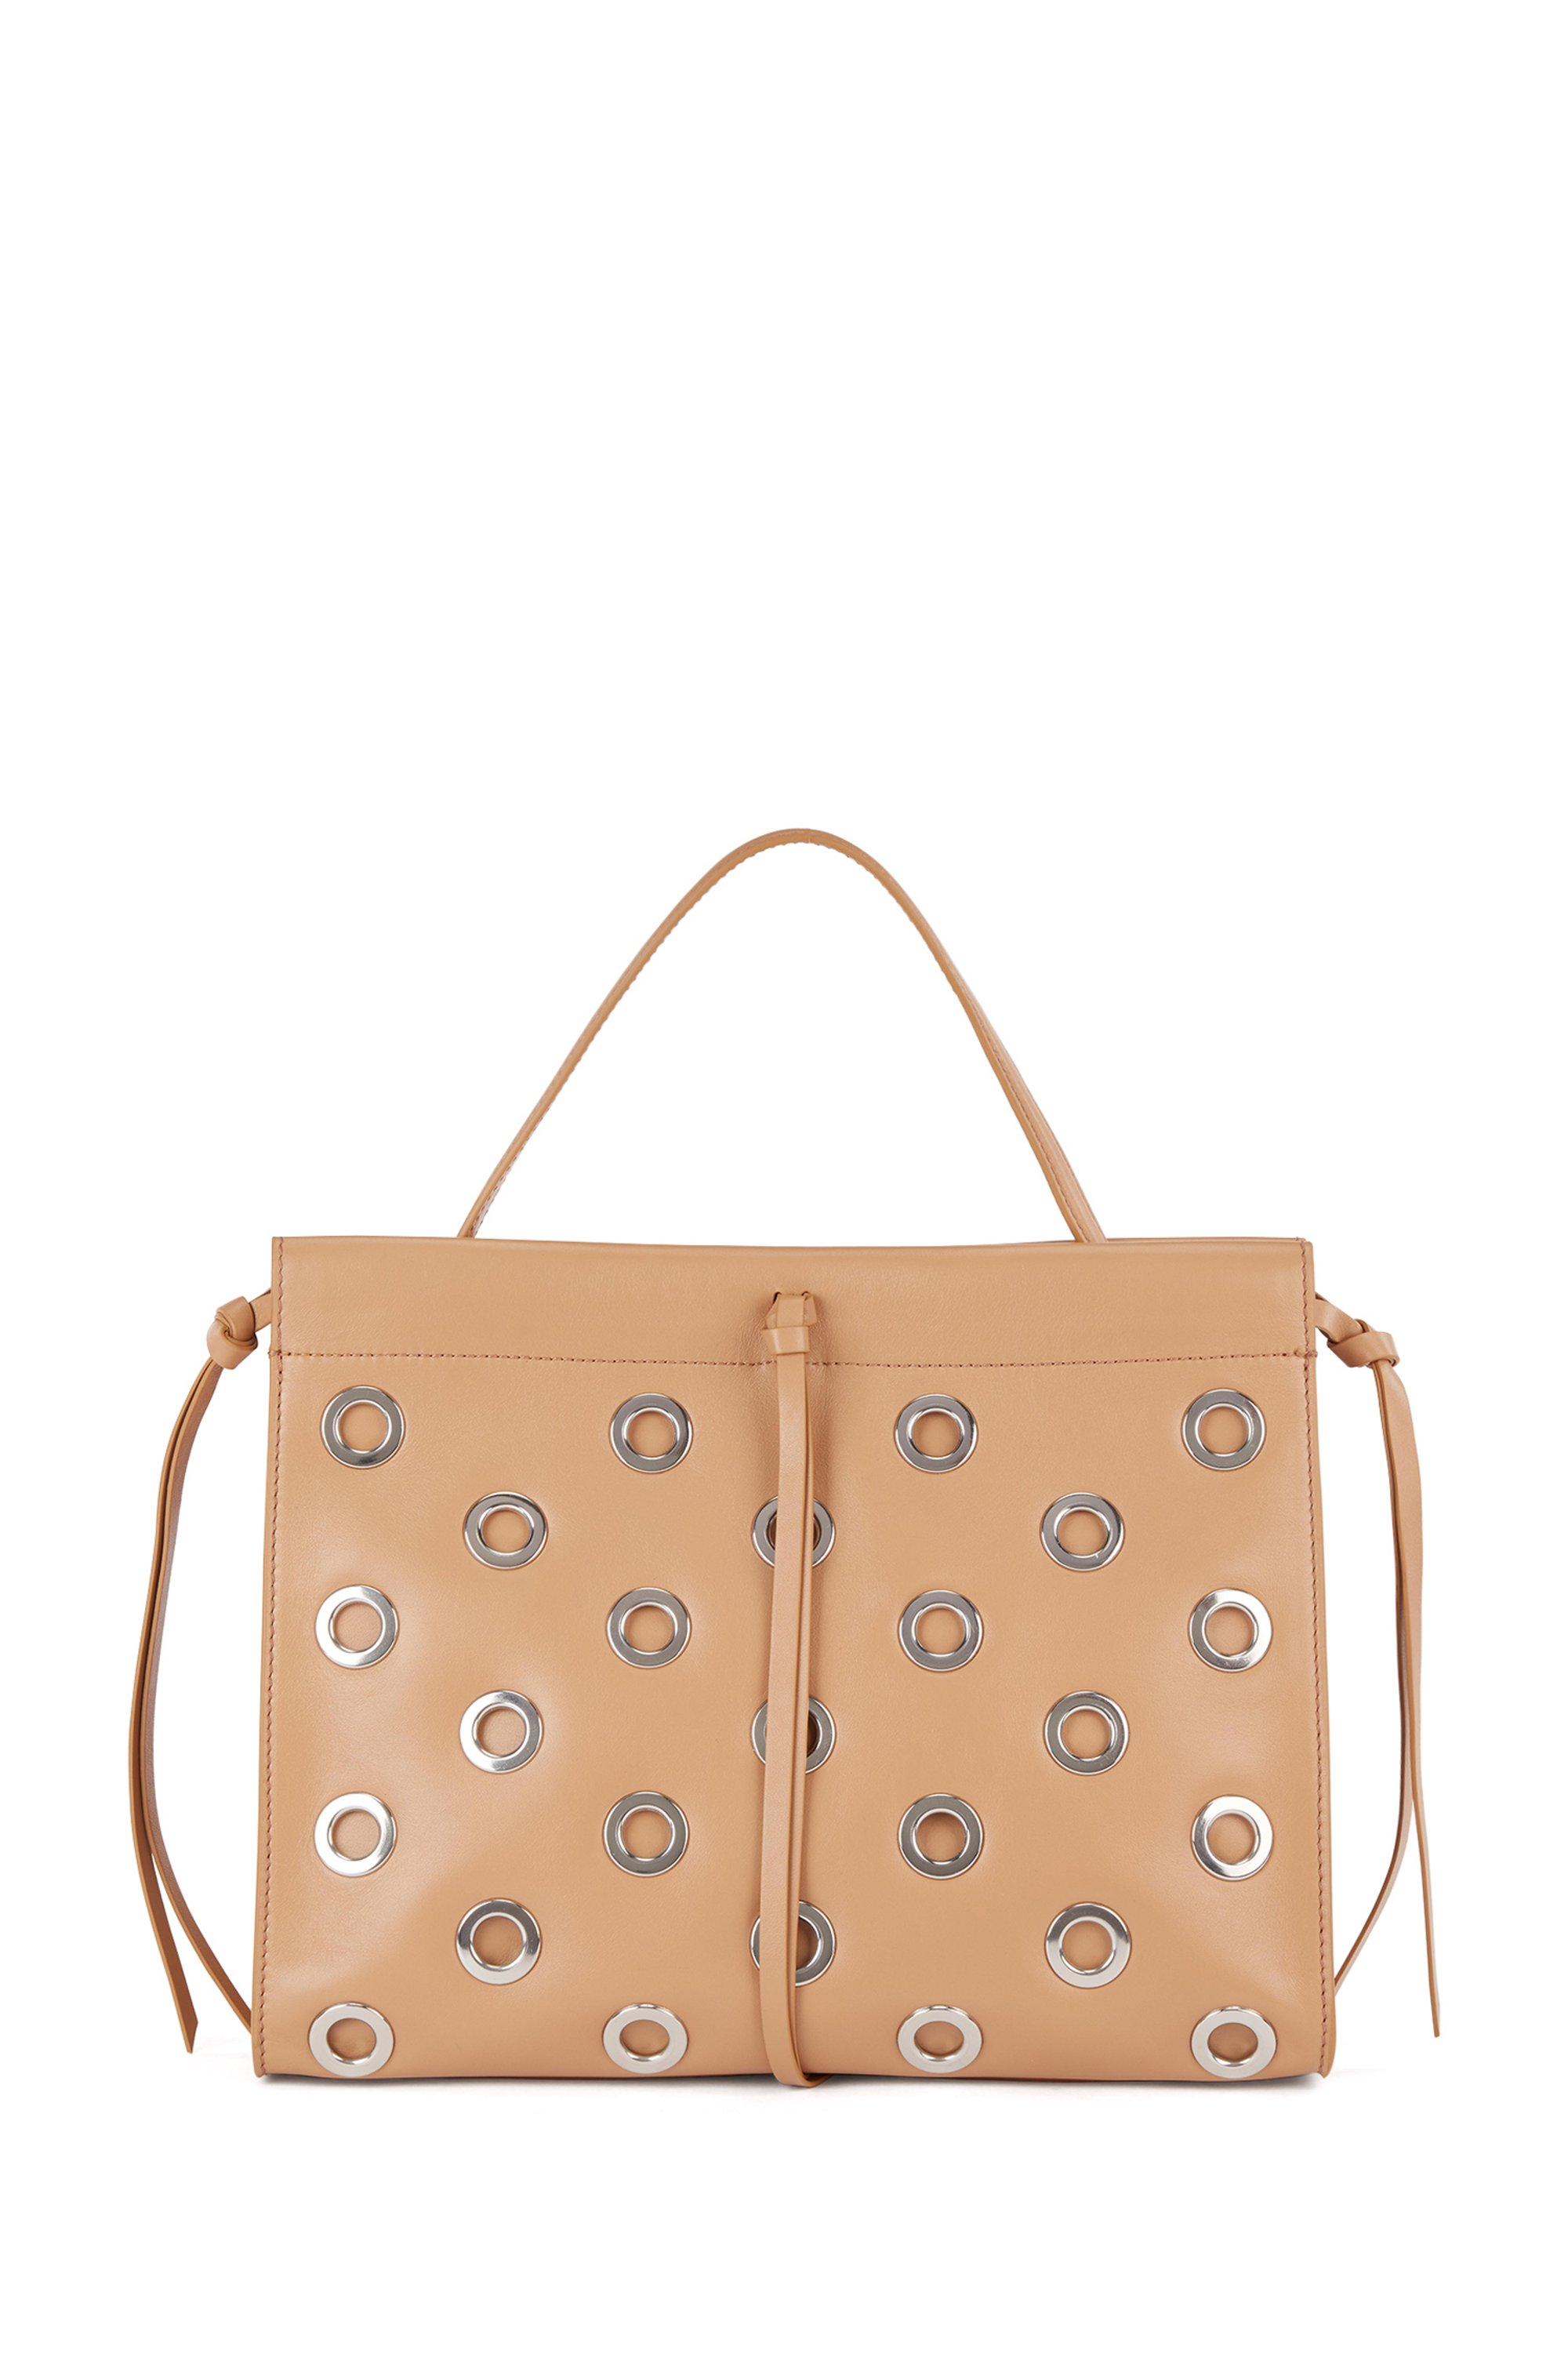 Metallic-eyelet tote bag in leather with lace details, Light Brown